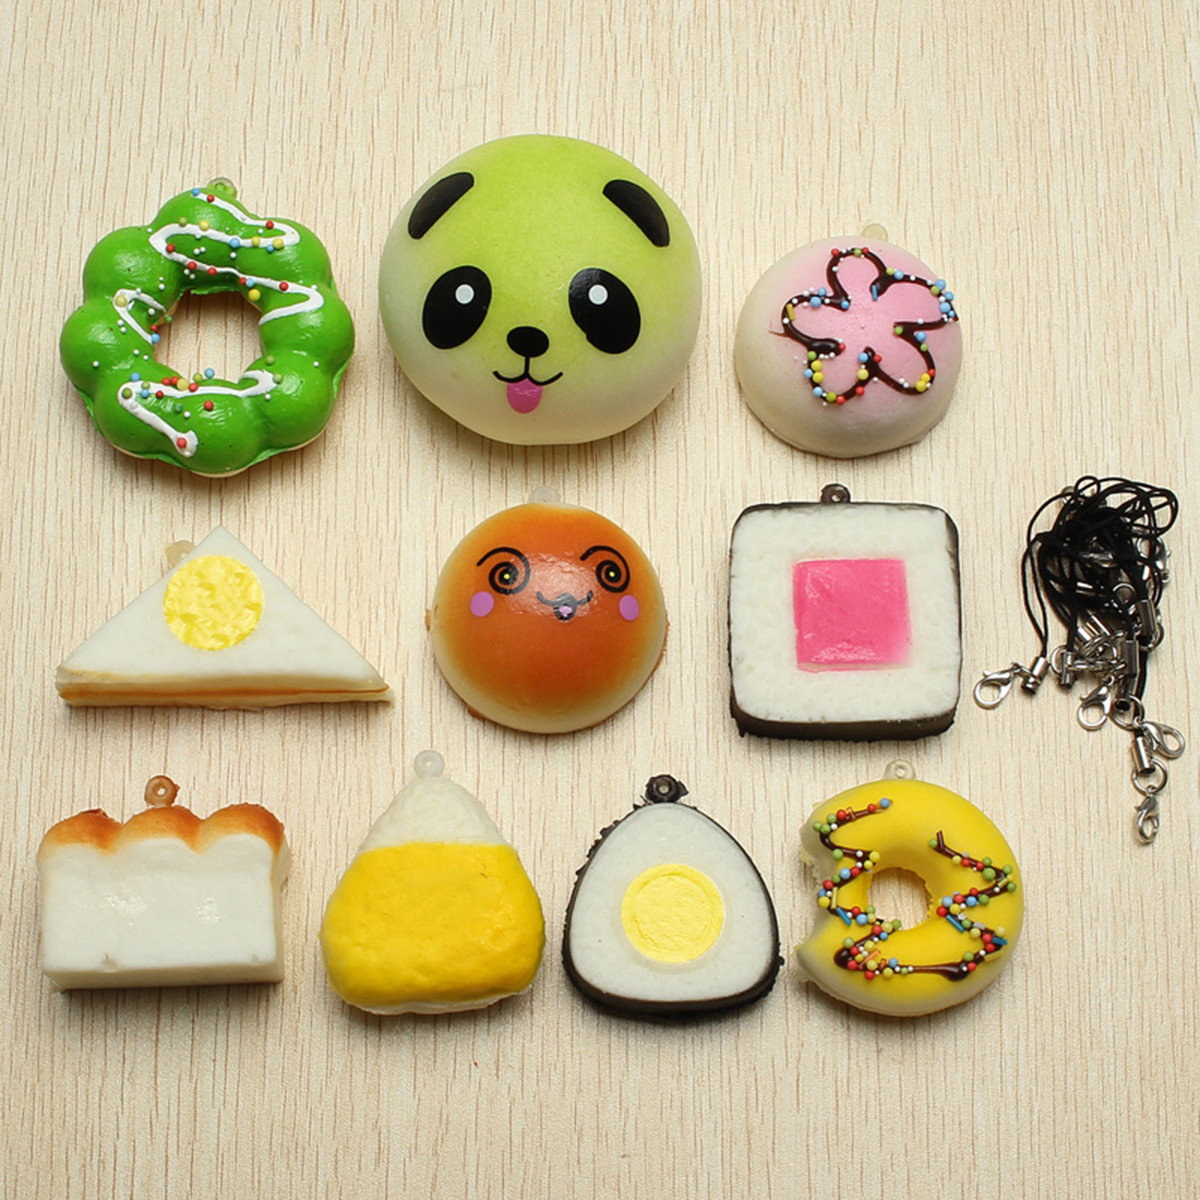 10Pcs Kawaii Squishy Soft Toy Sushi Panda Bread Cake Buns Phone Straps